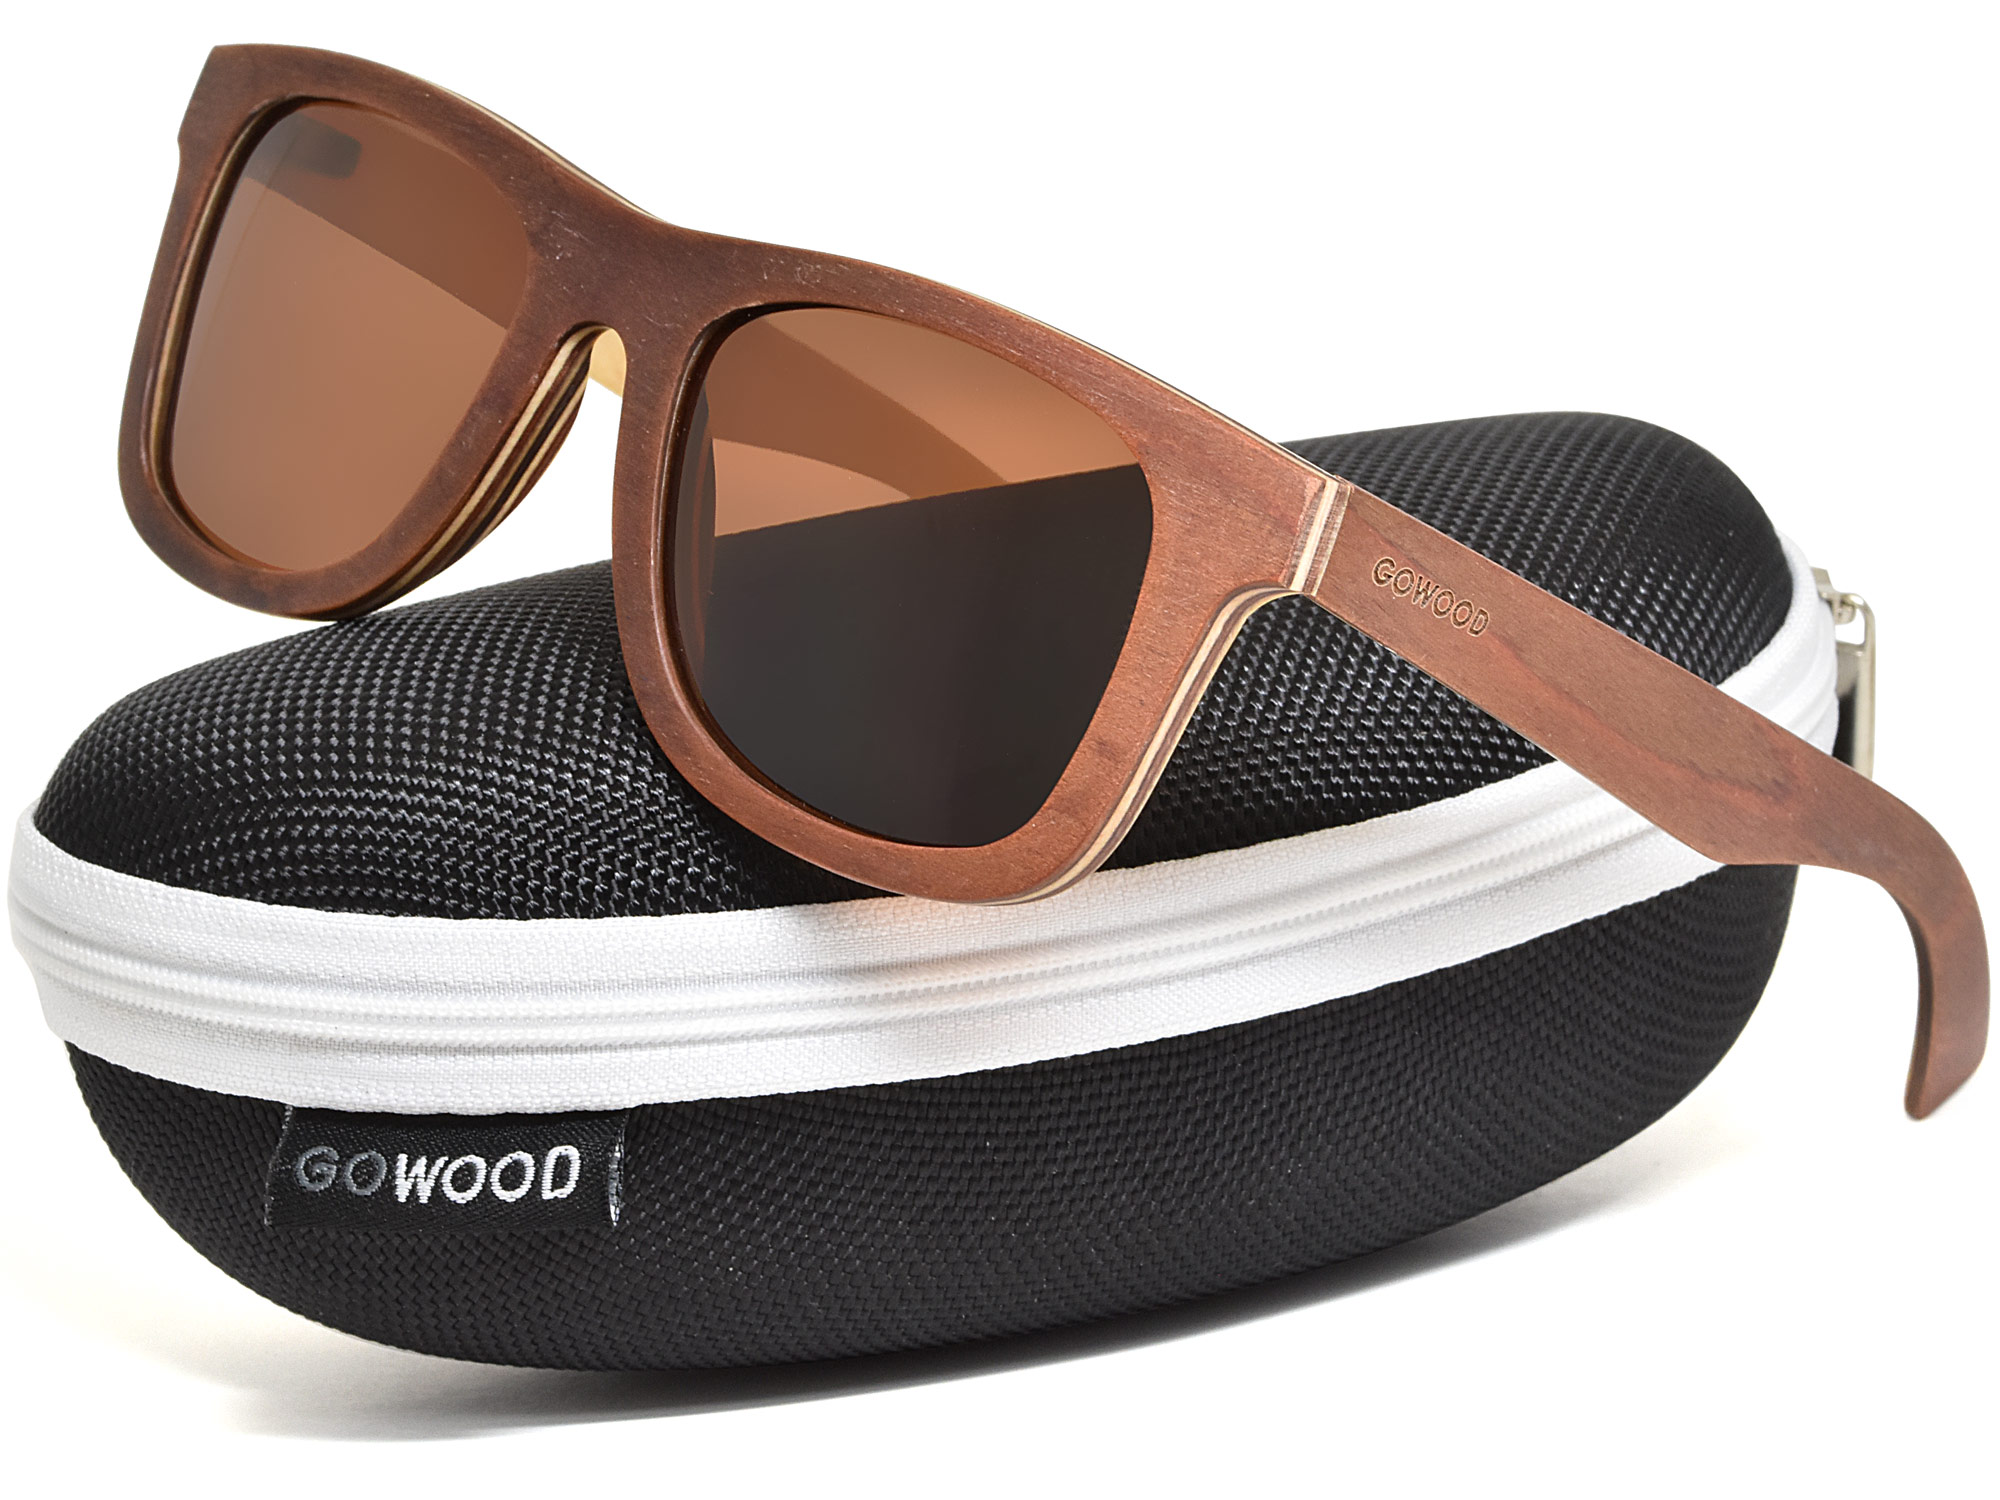 Brown maple wood sunglasses with brown lenses in a zipper case